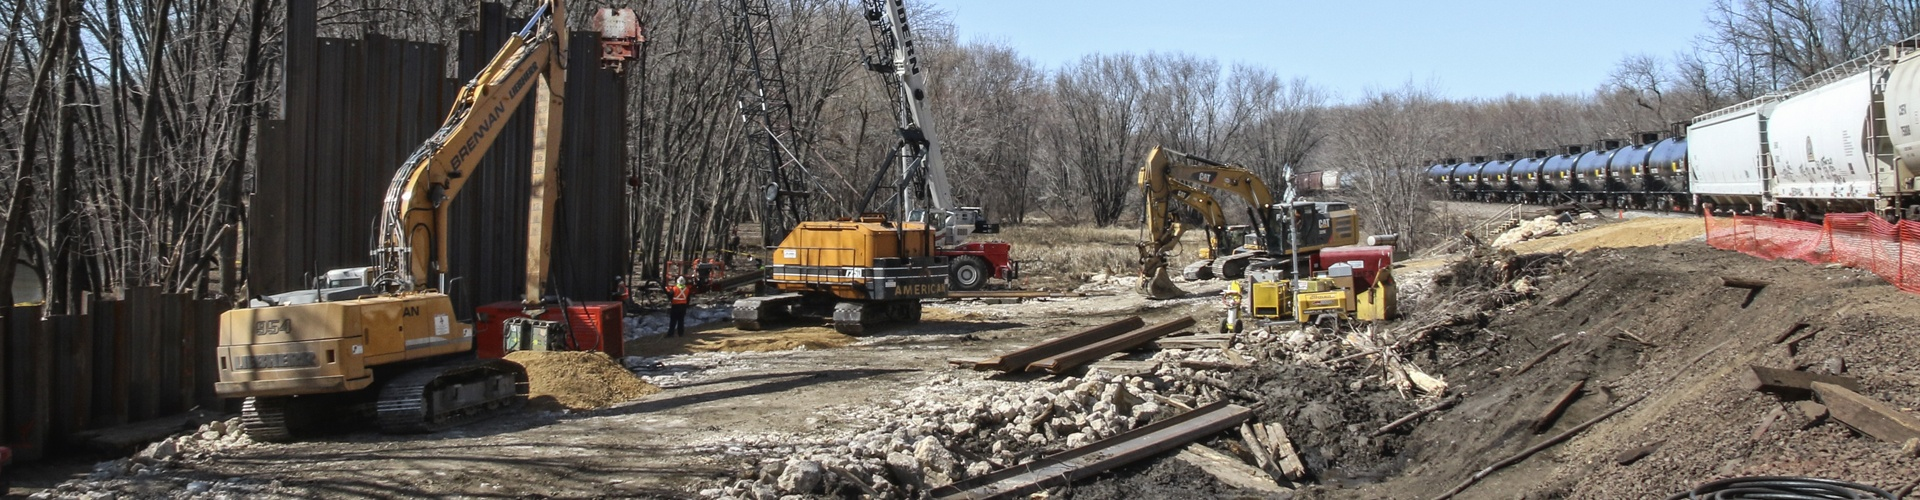 derailment response, railroad construction, railroad cleanup, derailment cleanup, environmental response, railroad contractor